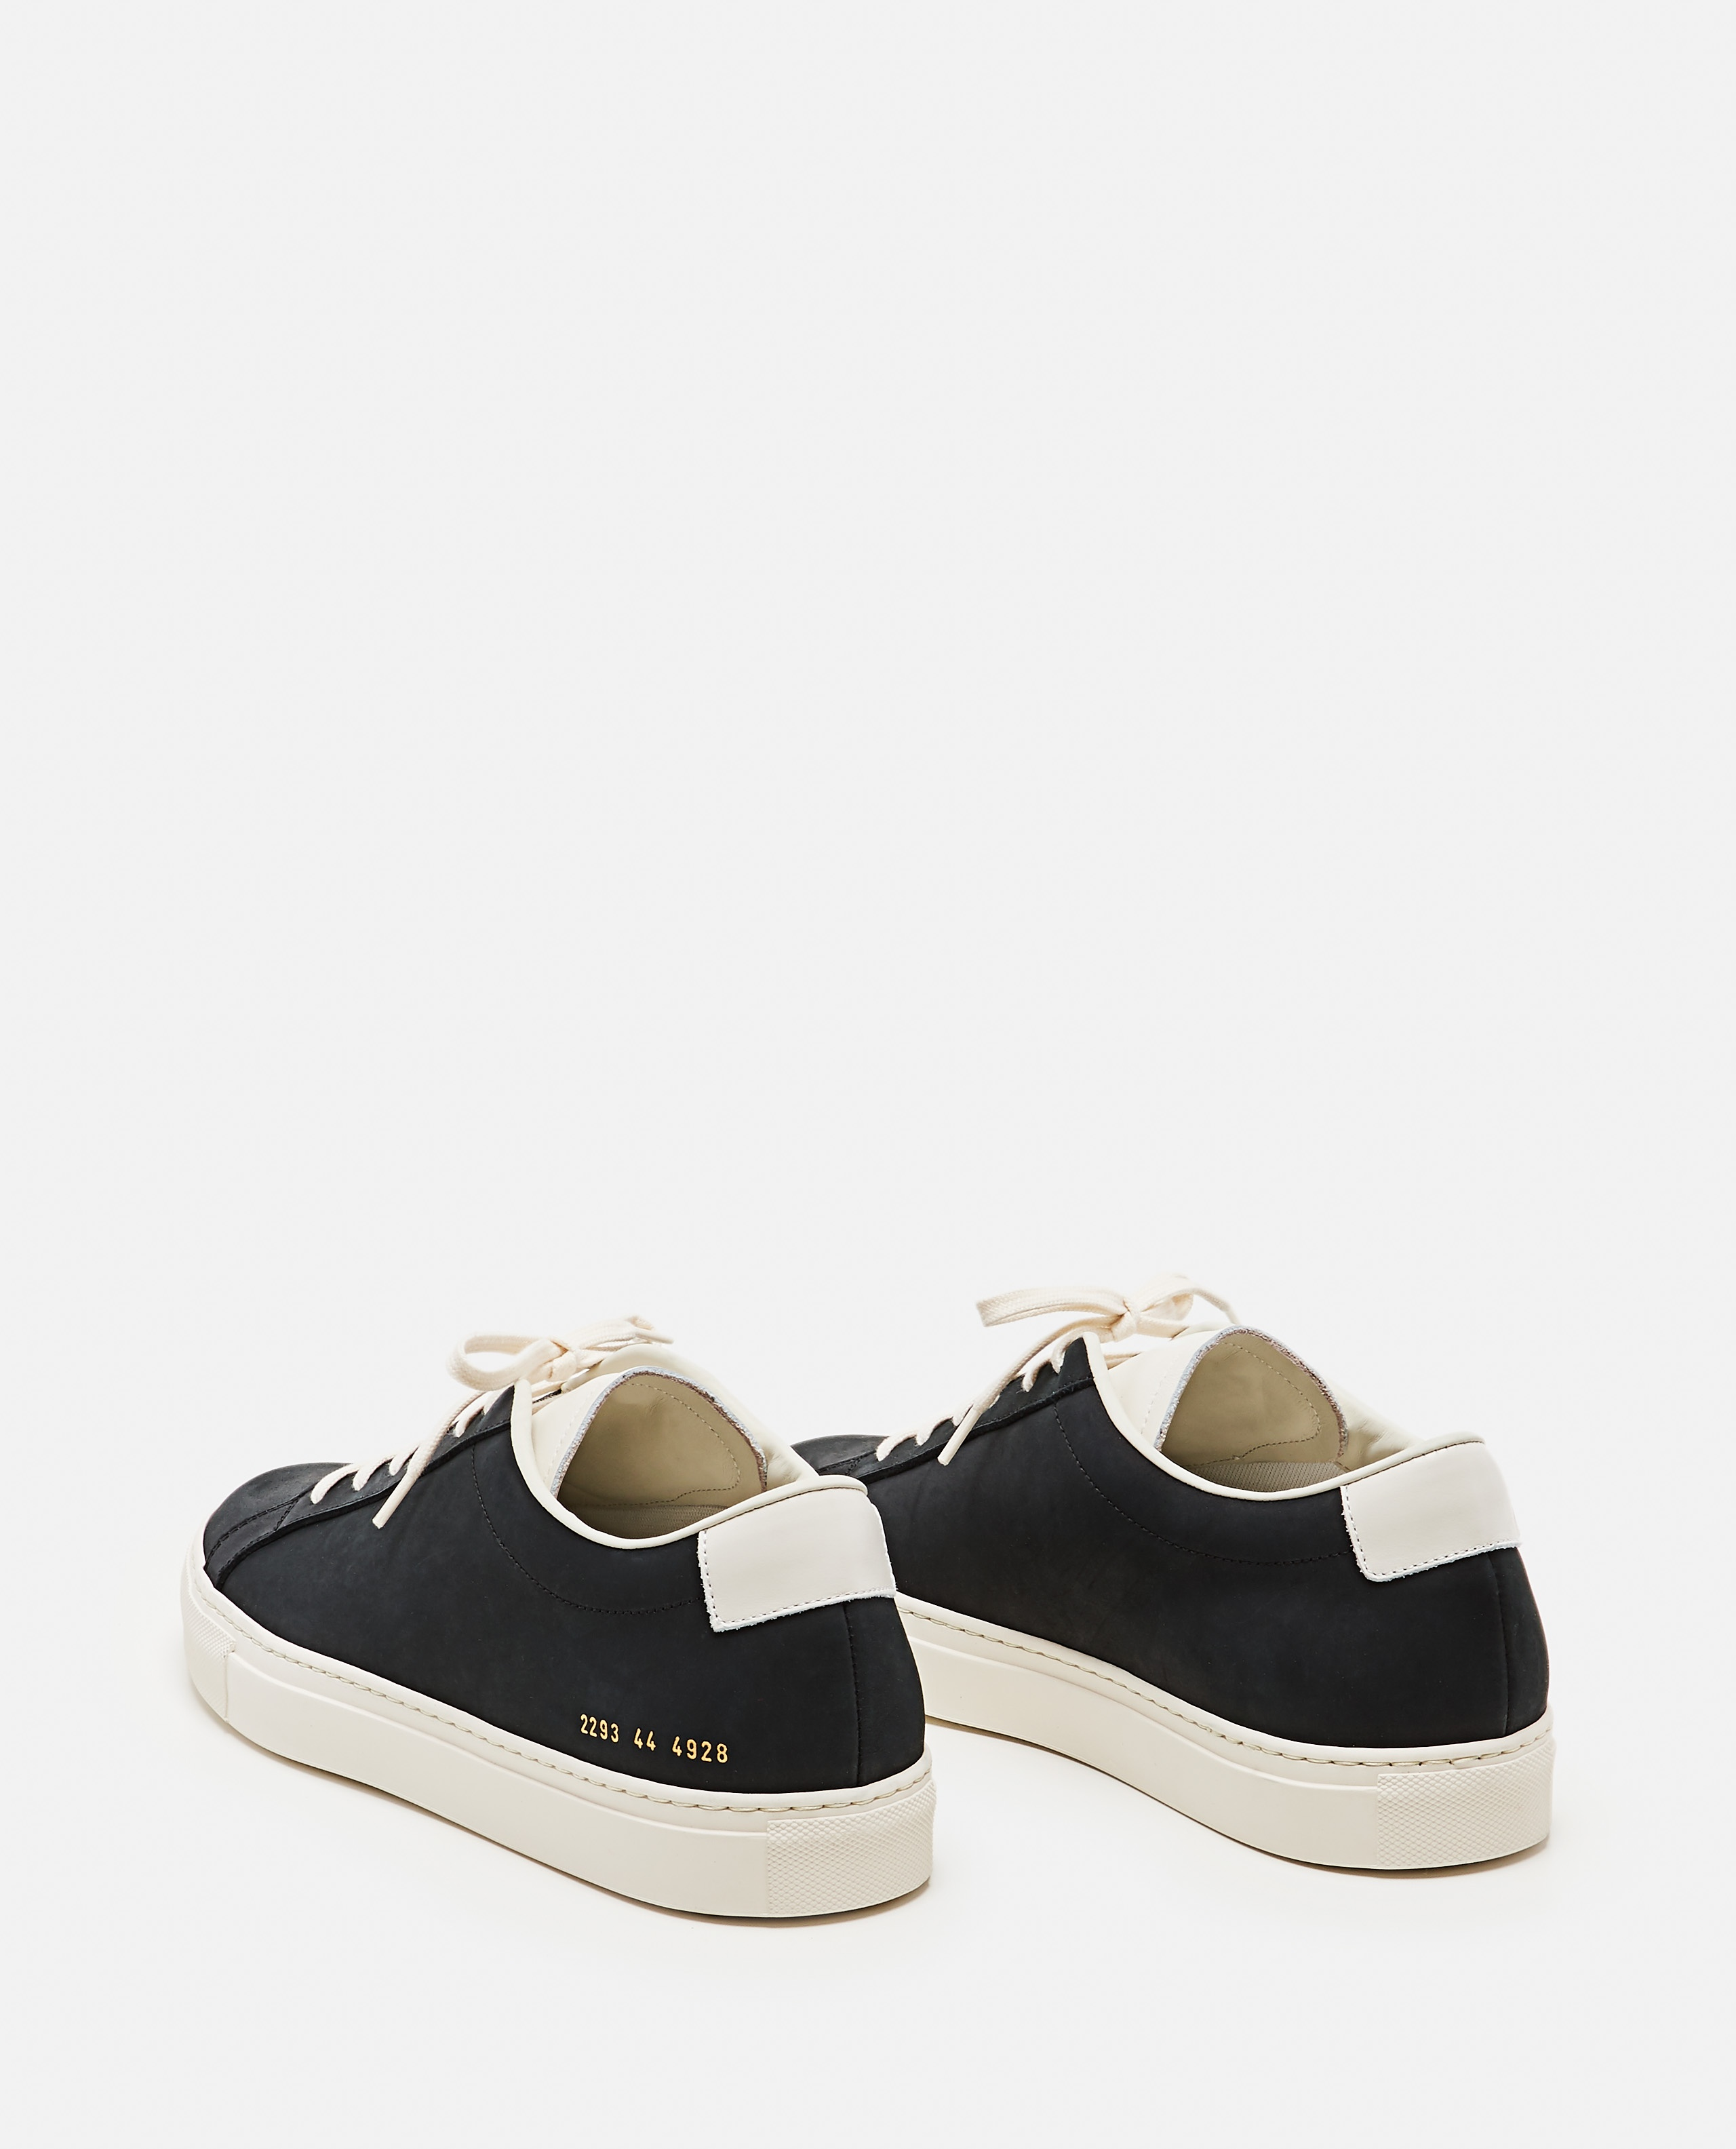 Sneakers Achilles Low in pelle nabuk Uomo Common Projects 000305520044801 3